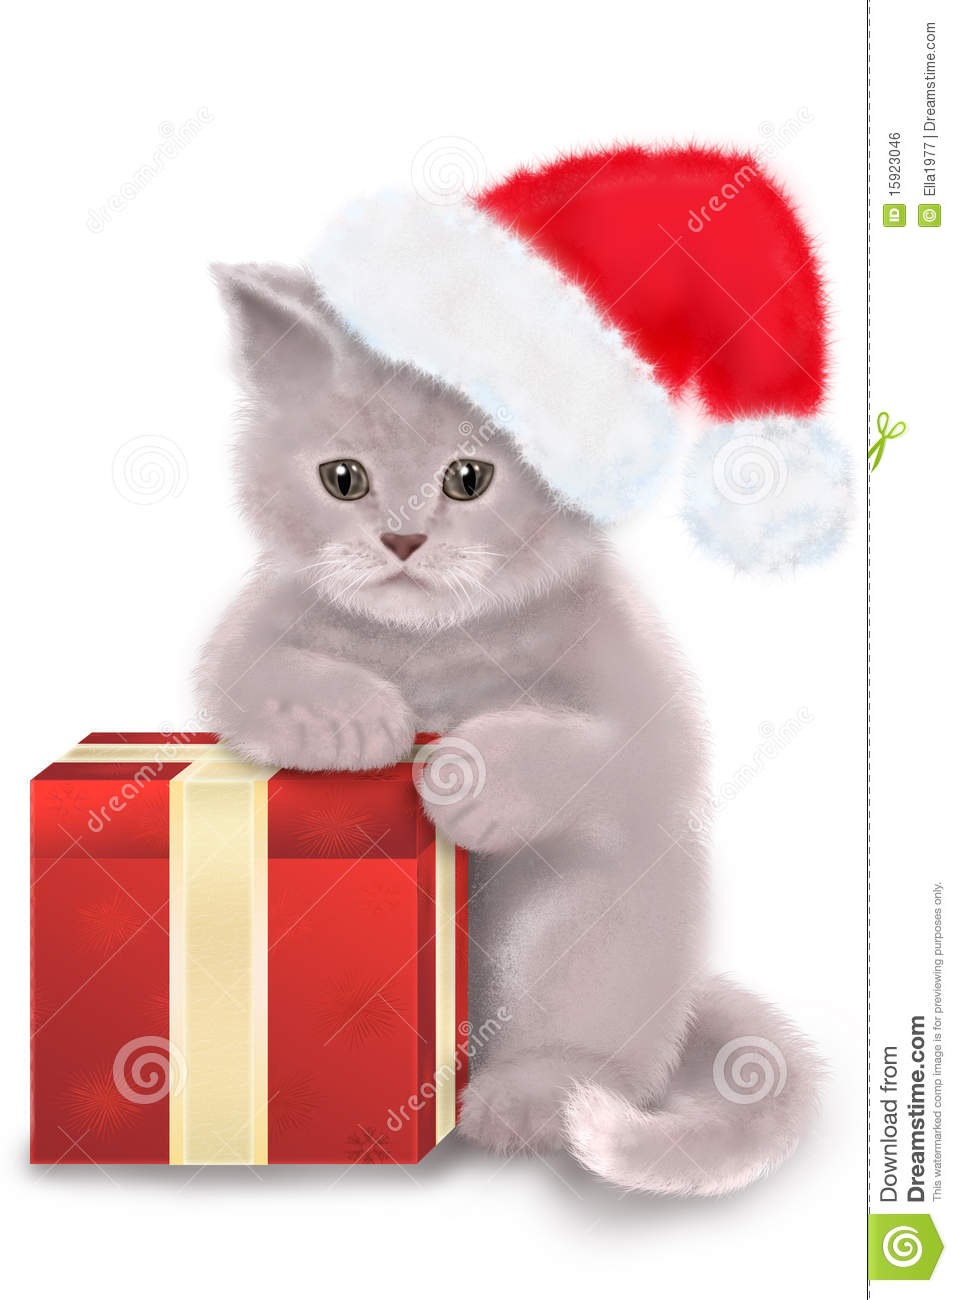 Christmas Cat Royalty Free Stock Image Image 15923046